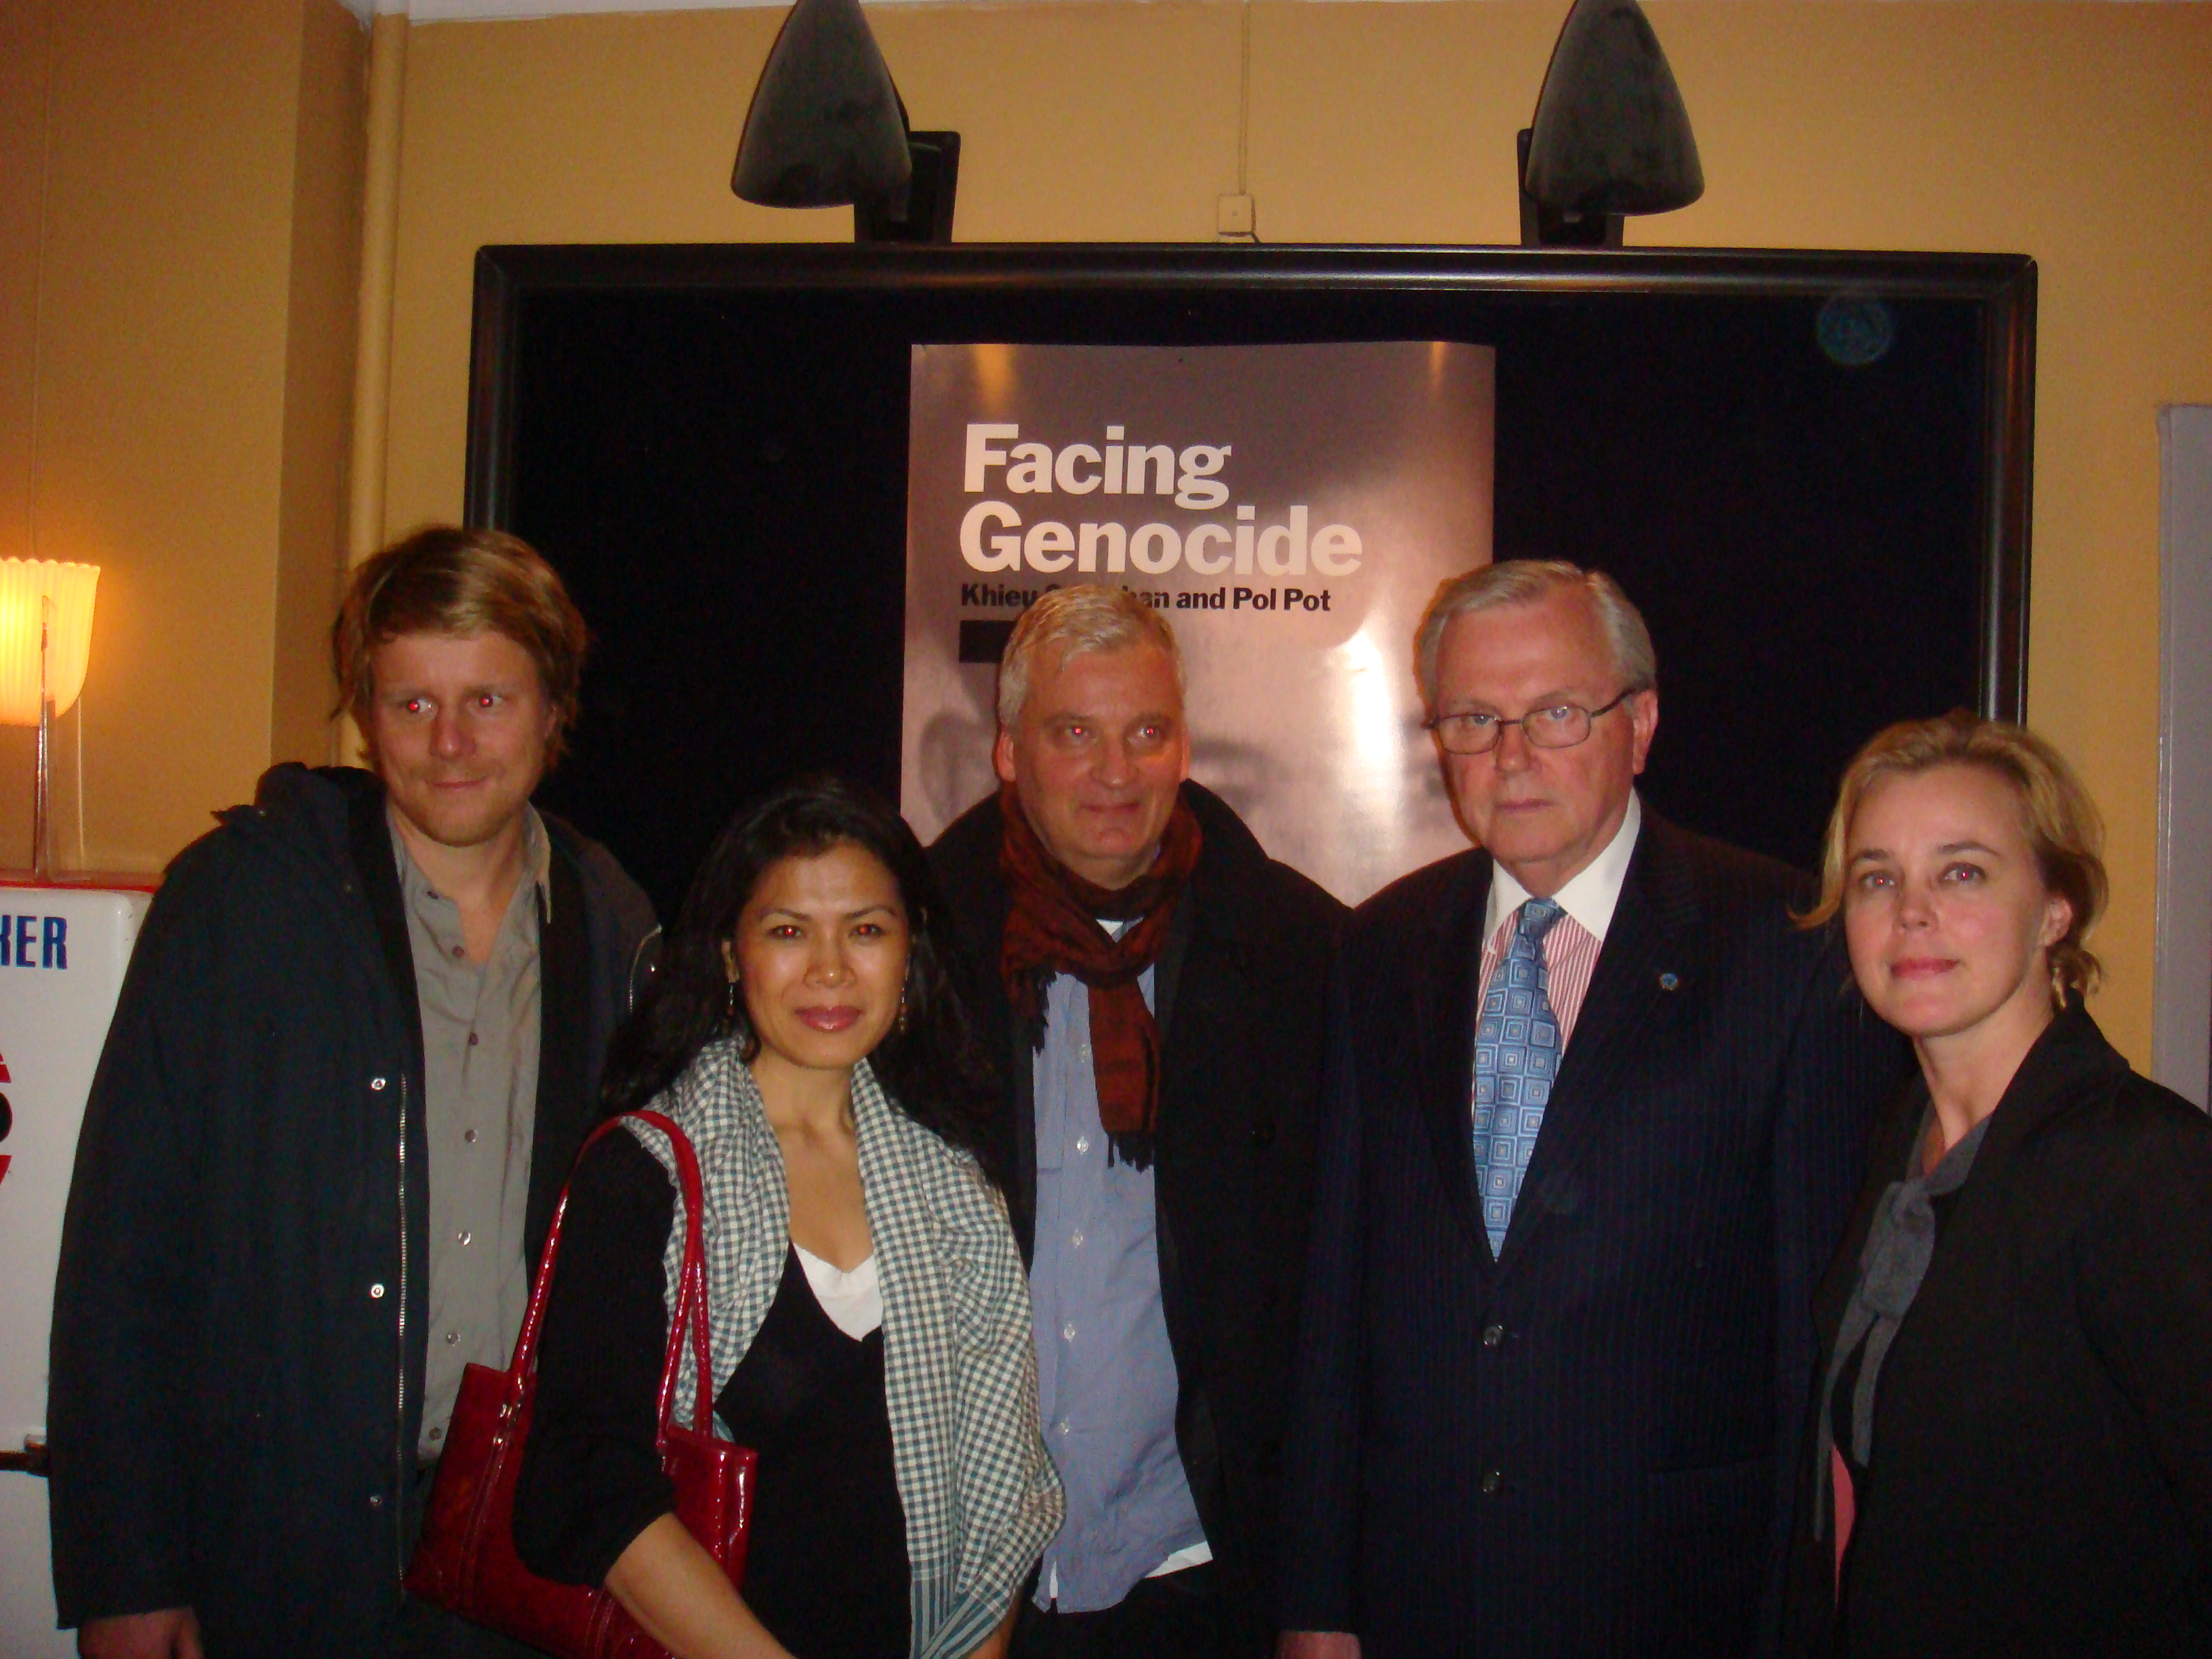 Theary Seng, Hans Corell, David Aronowitsch, Staffan Lindberg Stockholm 20 Oct. 2010